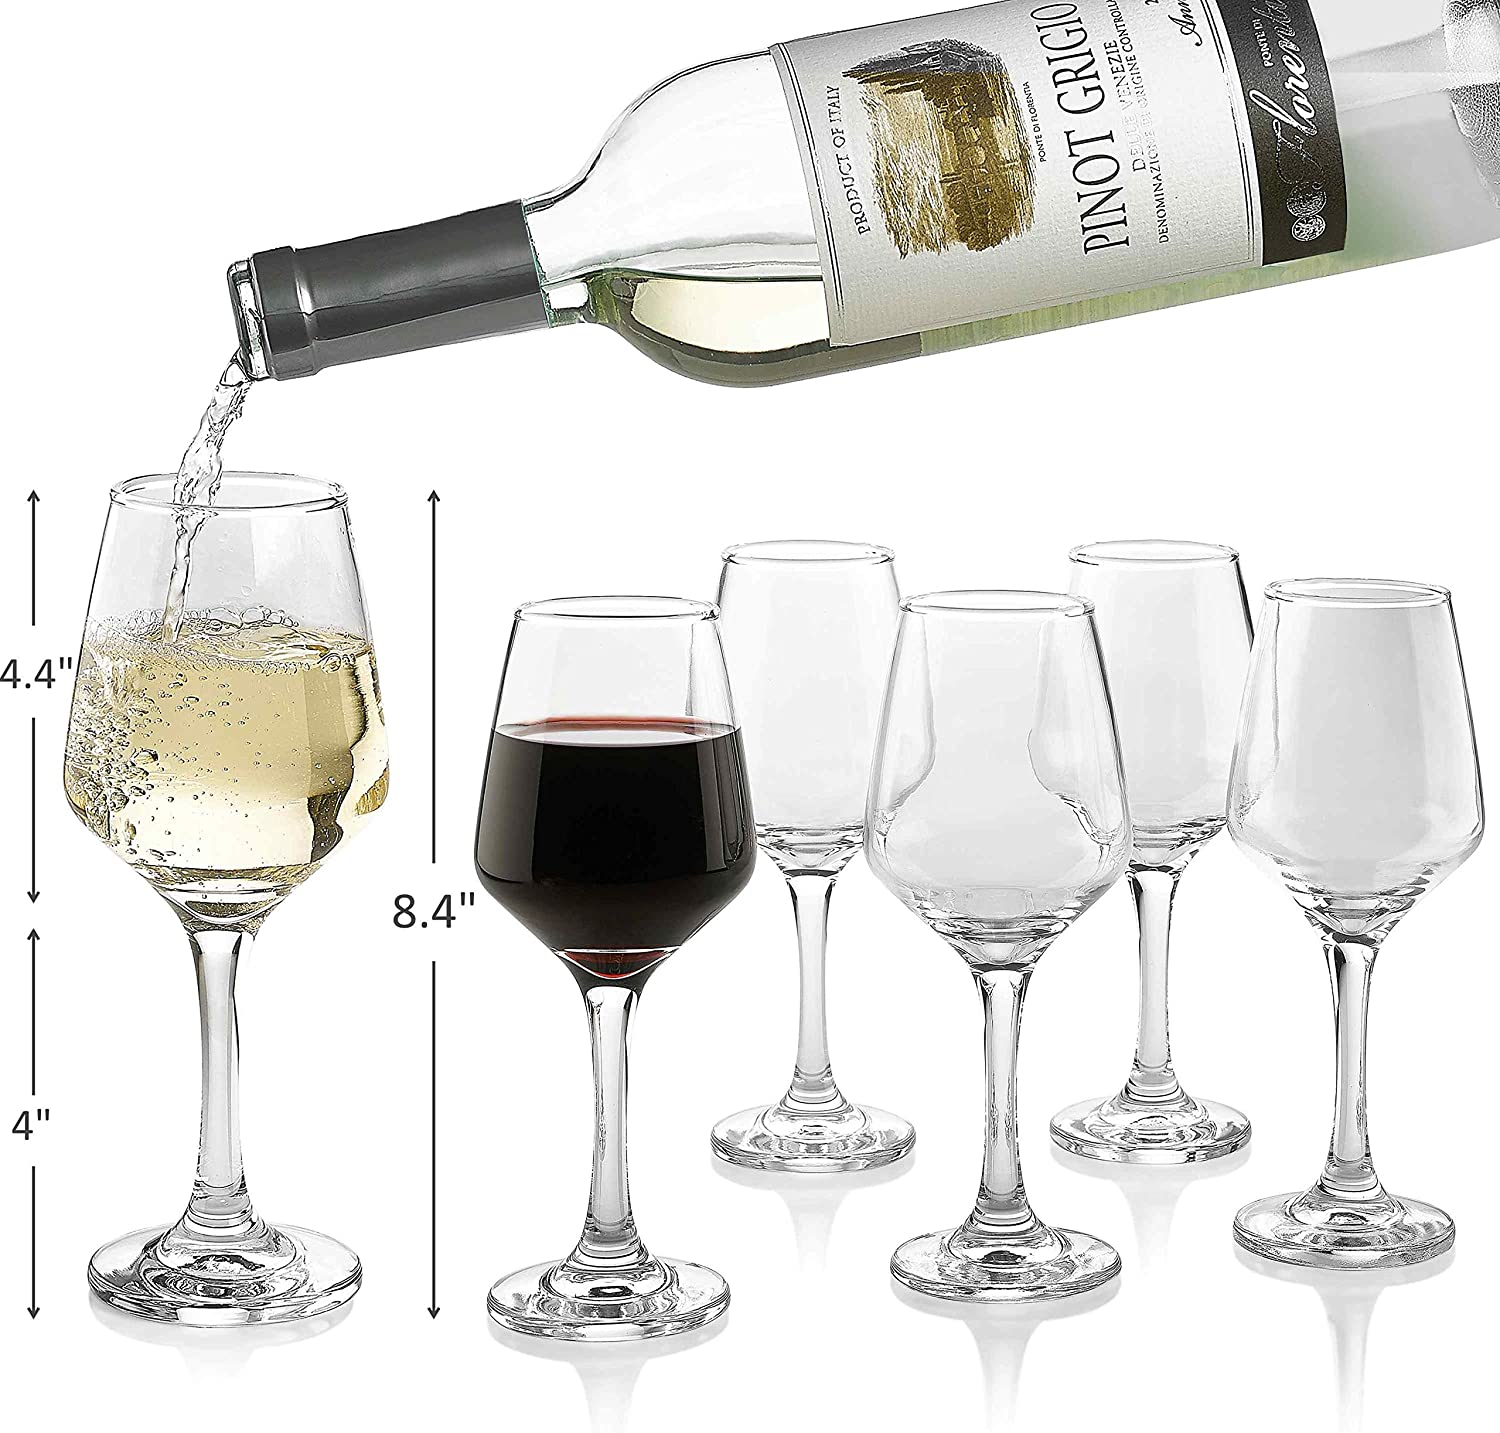 Premium Wine Glasses 10 Ounce - Lead Free Clear Classic Wine Glass with Stem Pack of 6 - Great For White And Red Wine - Elegant Gift For Housewarming Party